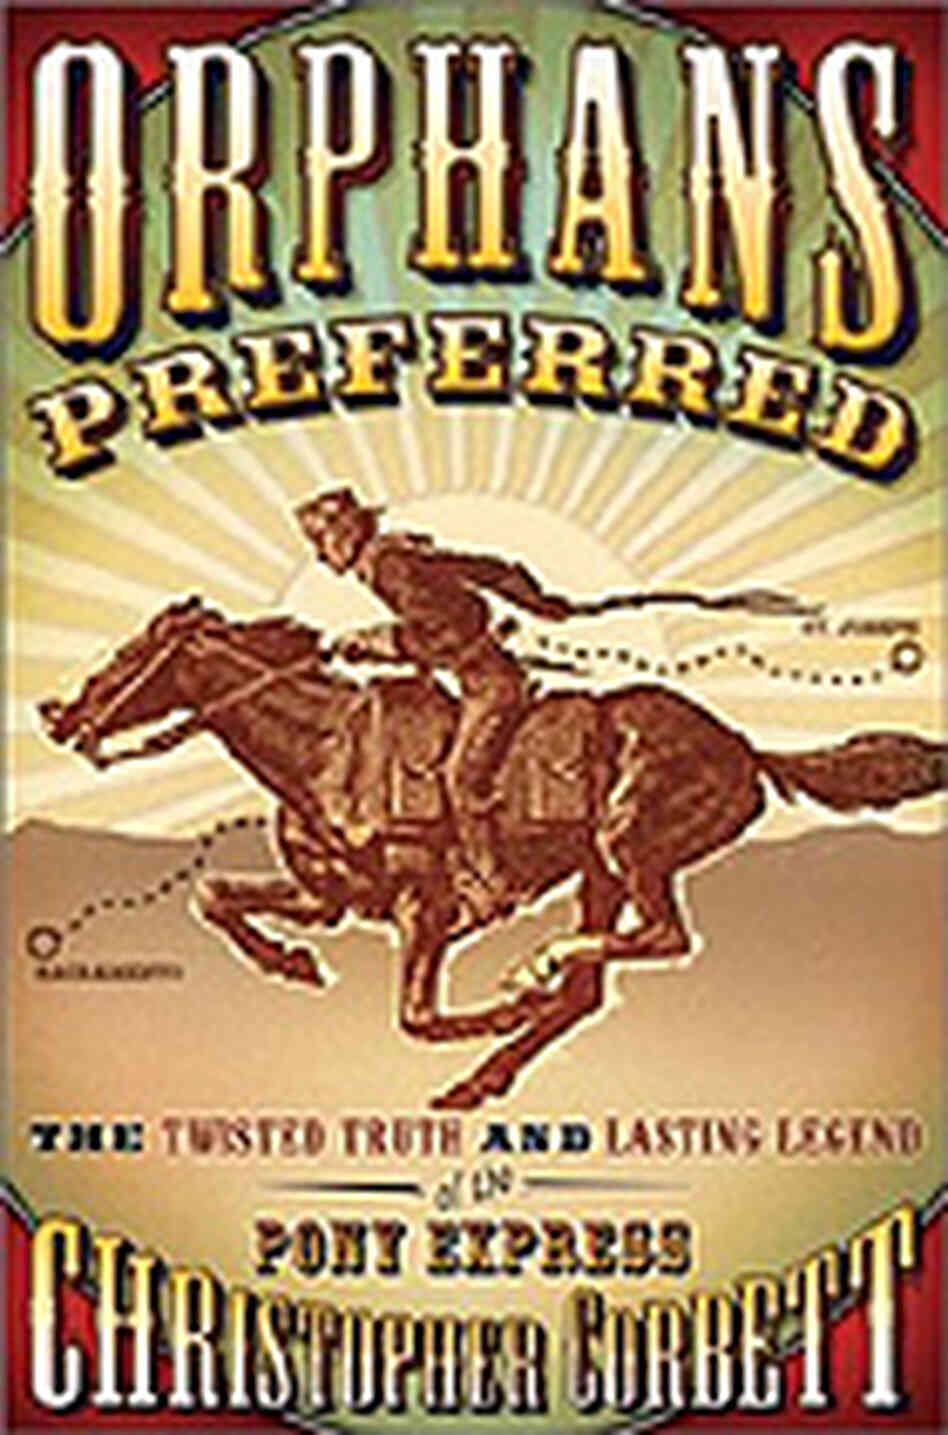 the pony express the legend of the american west An american legend sutter's mill in california and prior to the civil war there was a need for swifter mail service between the east and west the pony express.